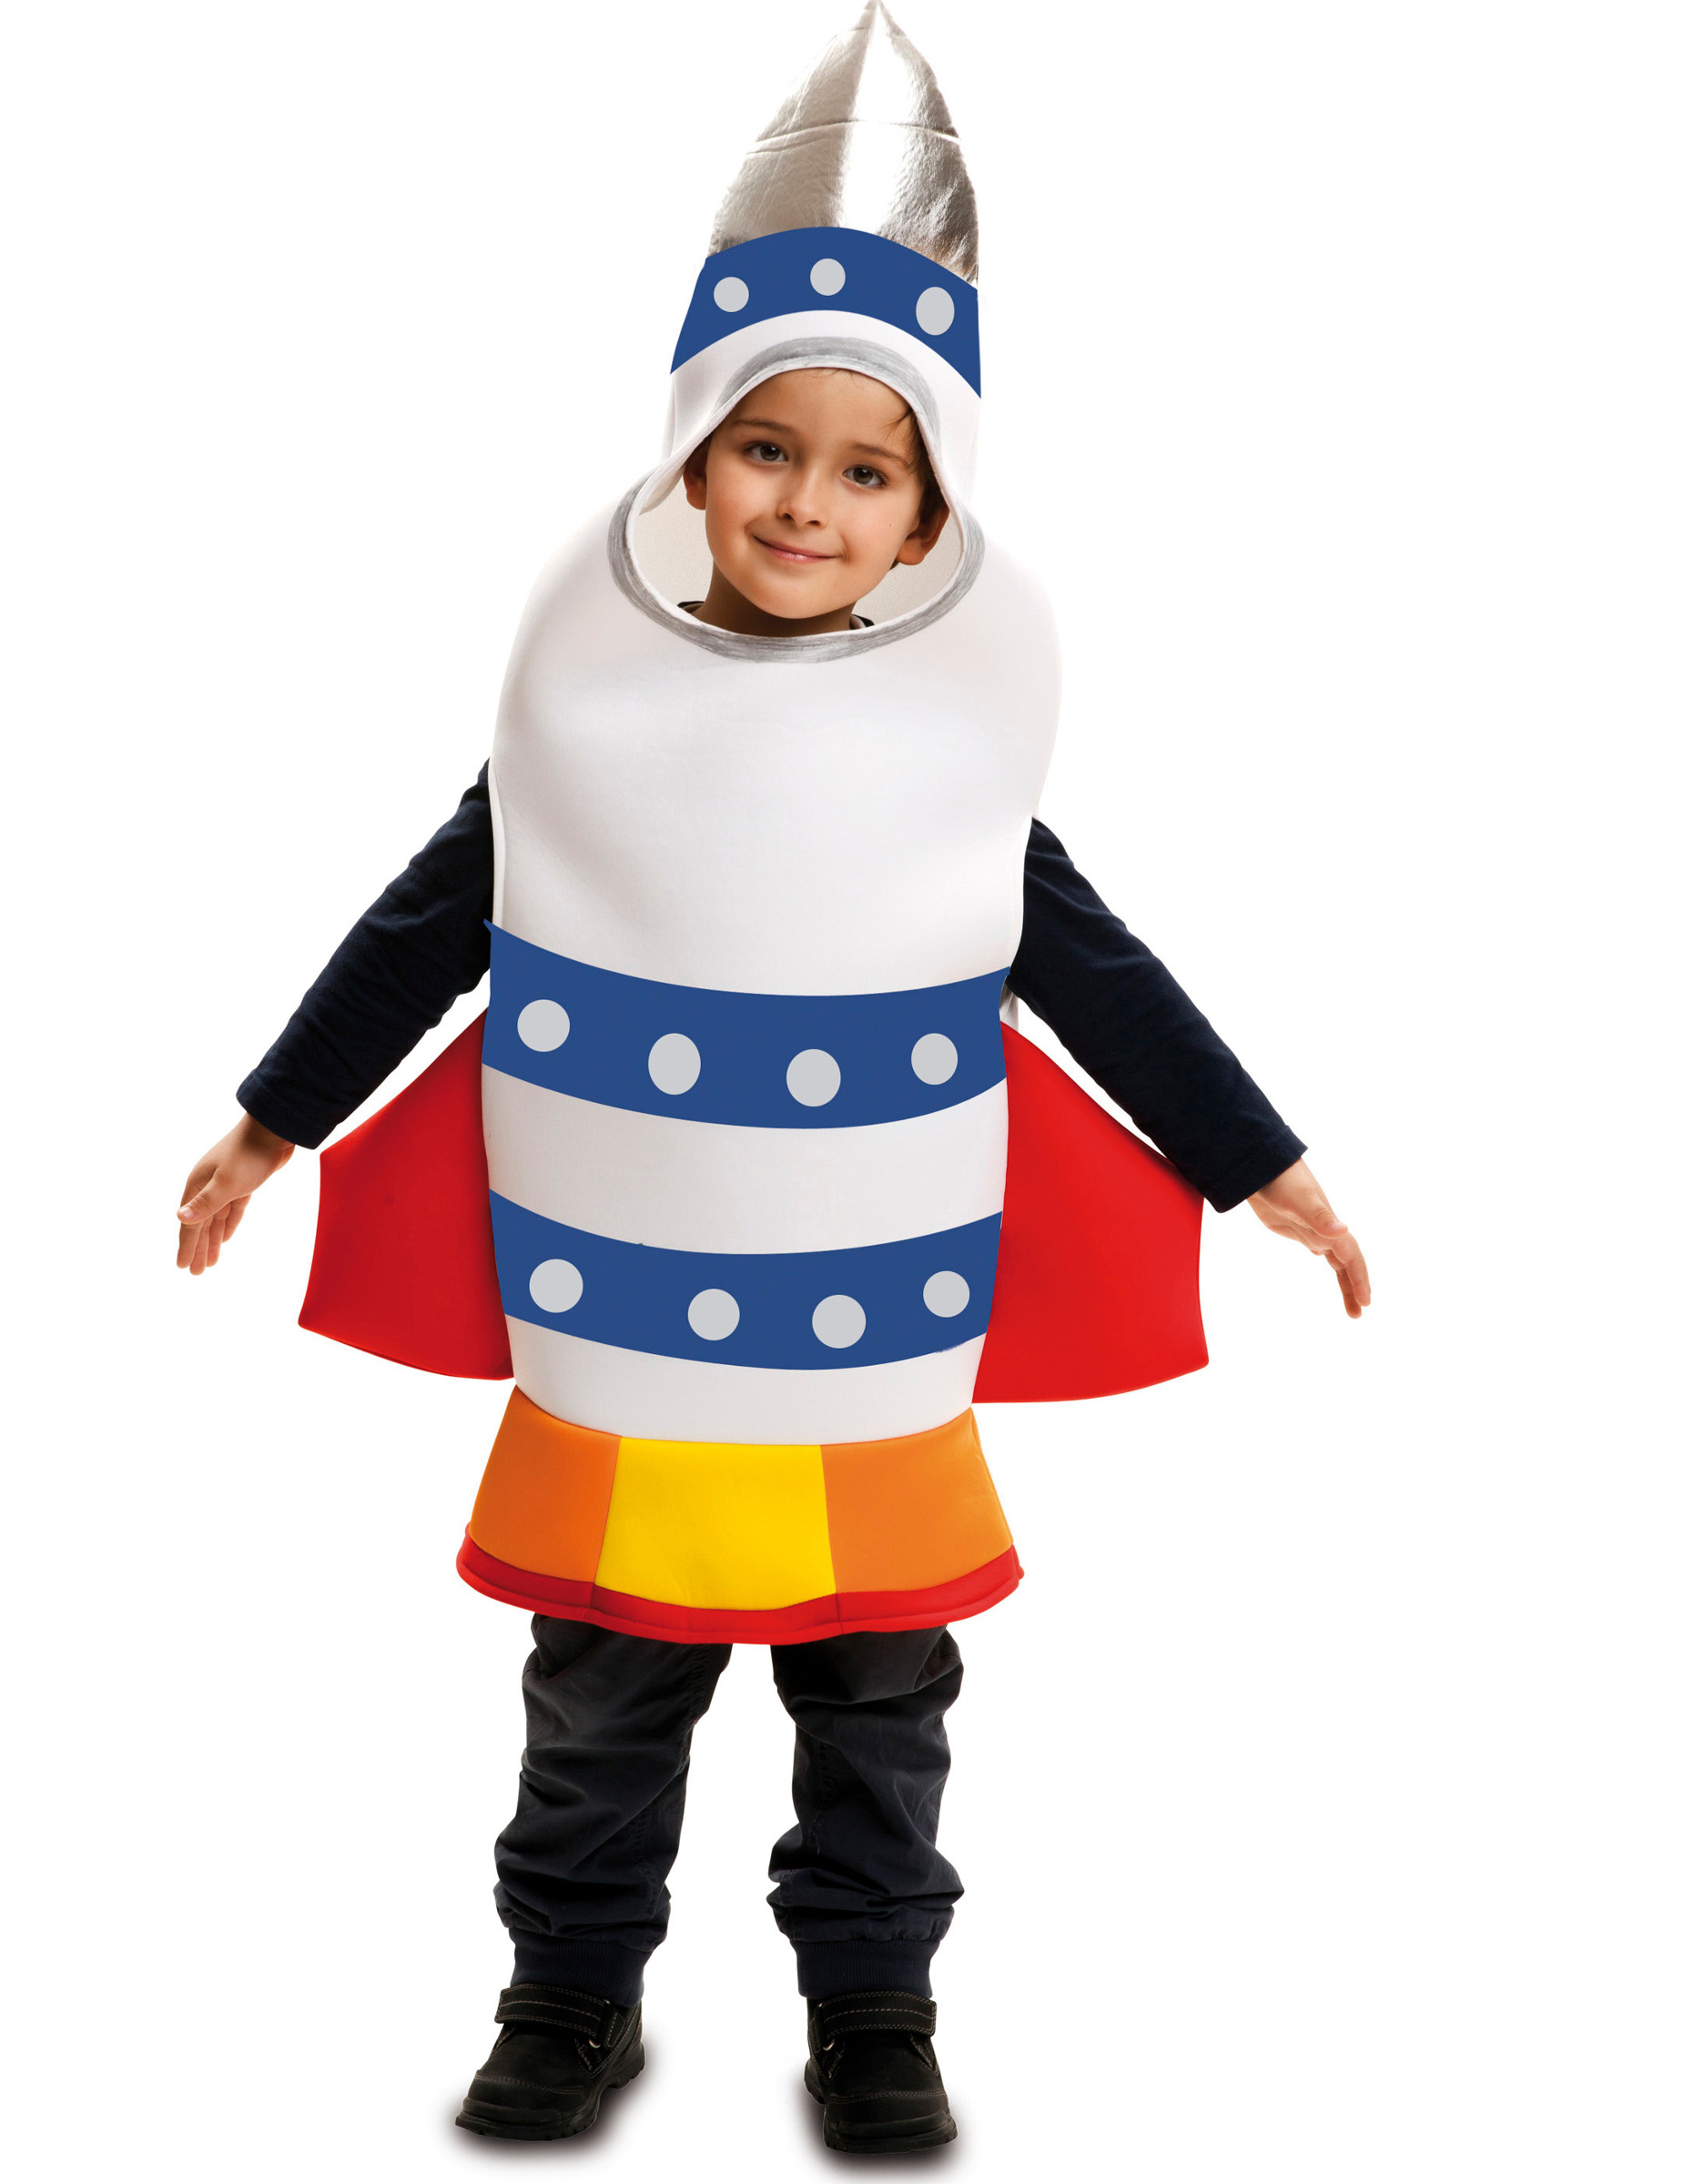 asteroid costume for kids - HD1850×2400